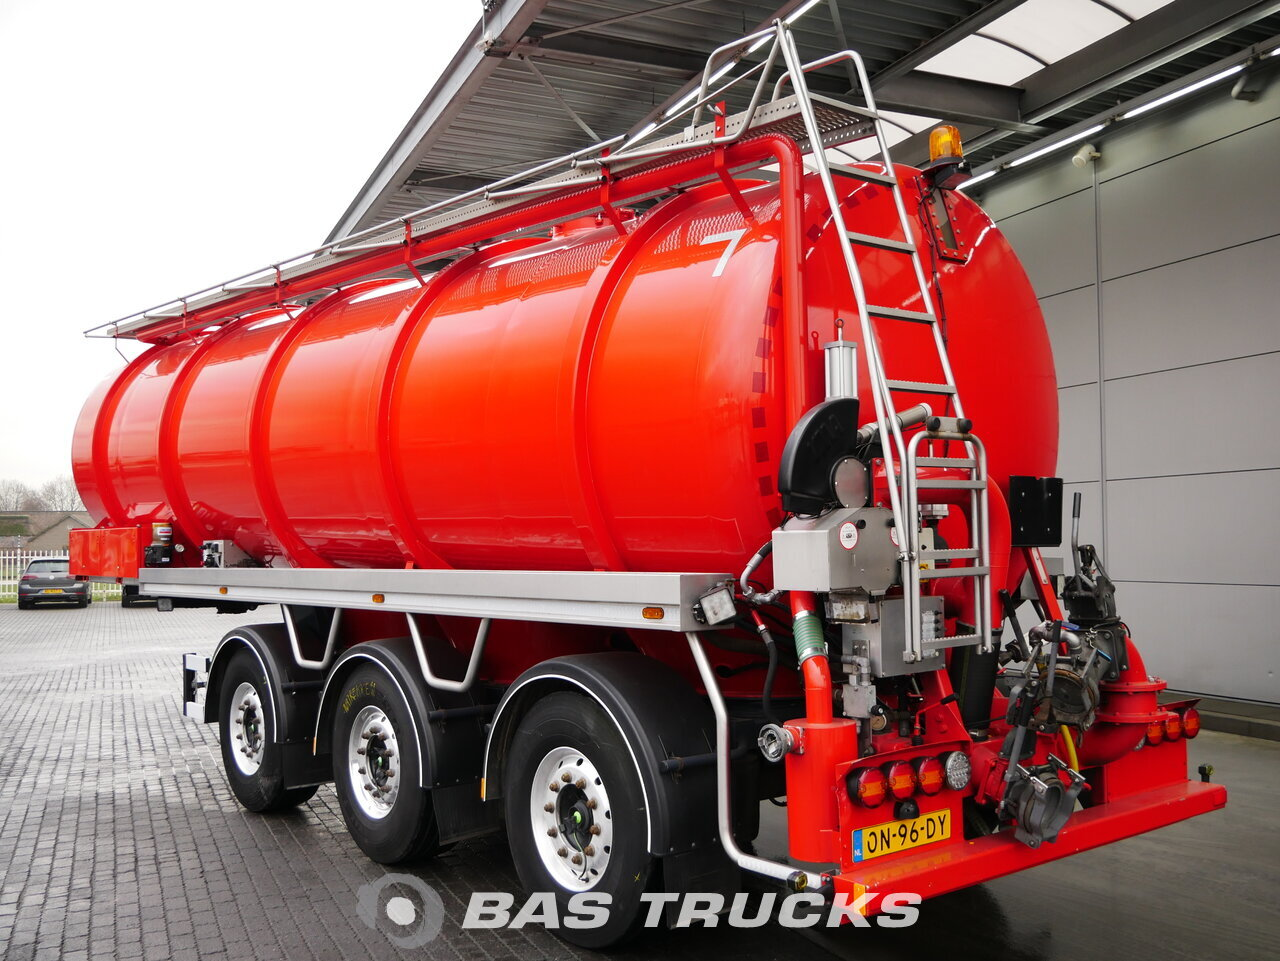 D Tec For Sale At Bas Trucks D Tec Vtt 01 Mesttank Gps Monster Pomp Stuuras Liftas 01 2014